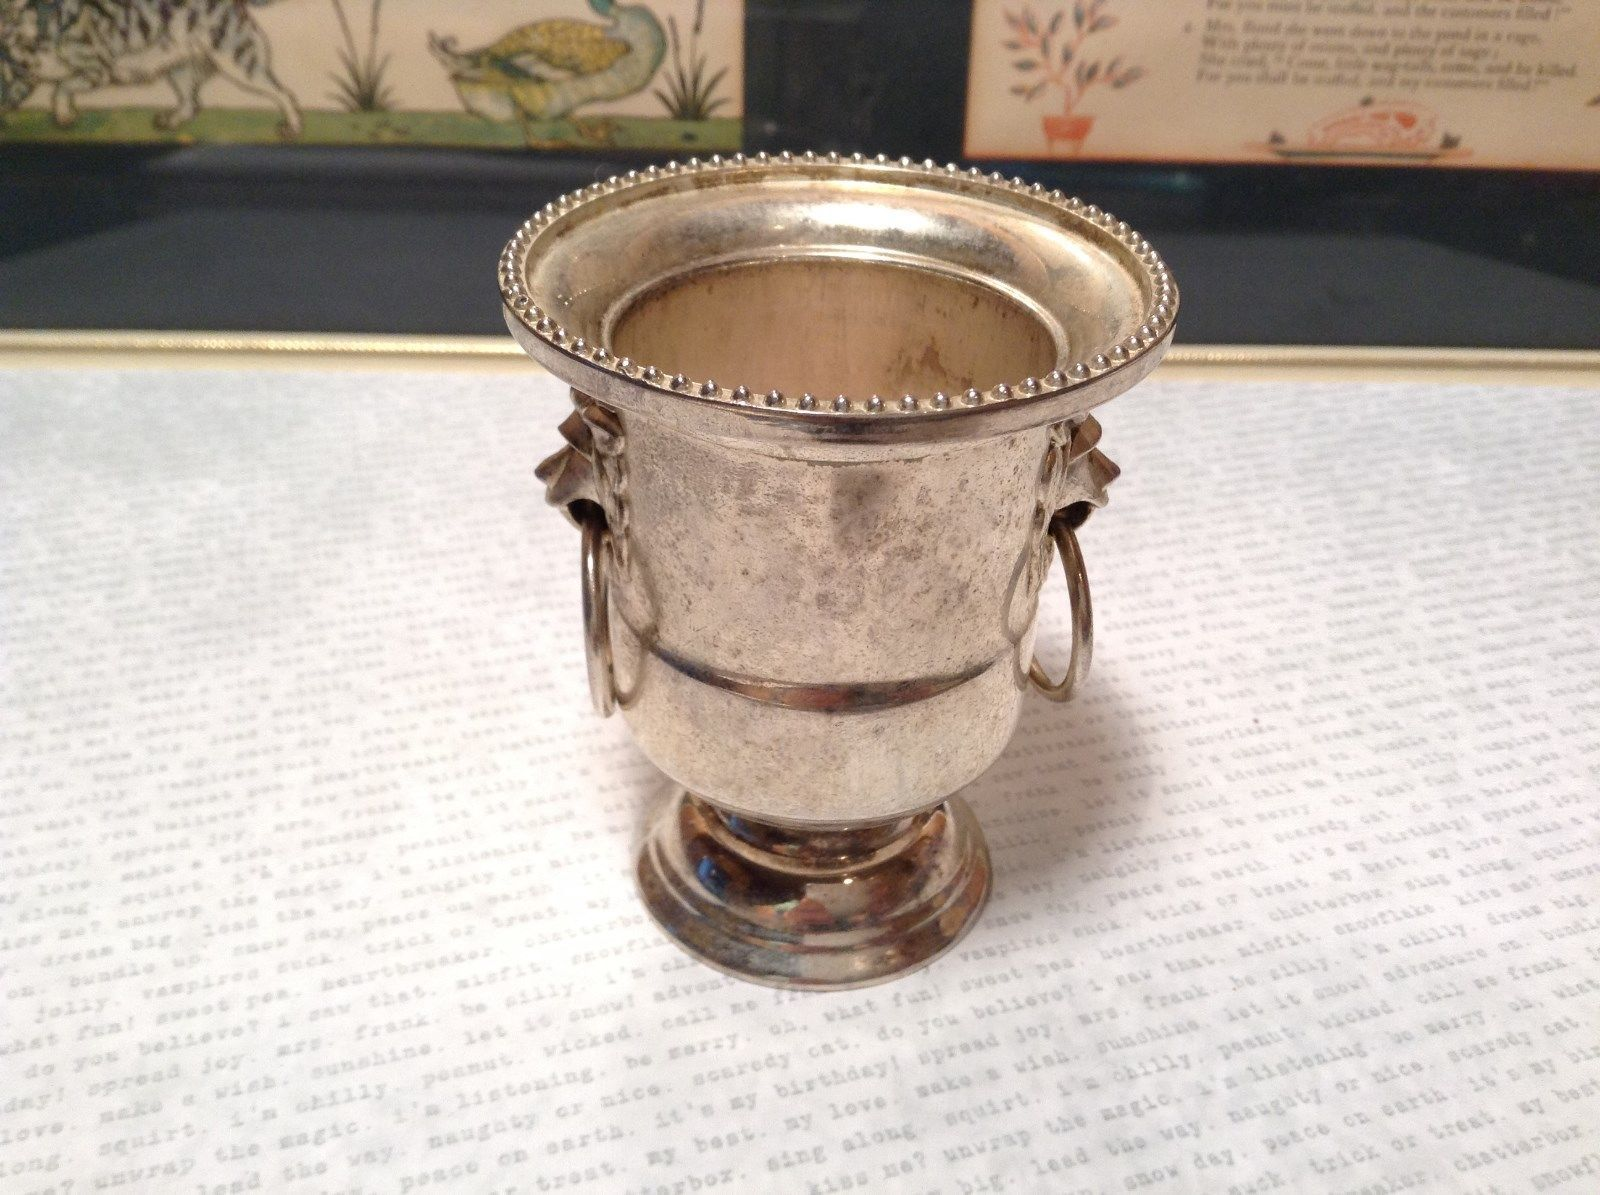 Primary image for Vintage Metal Goblet Like Candlestick Holder Lions and Rings on Sides